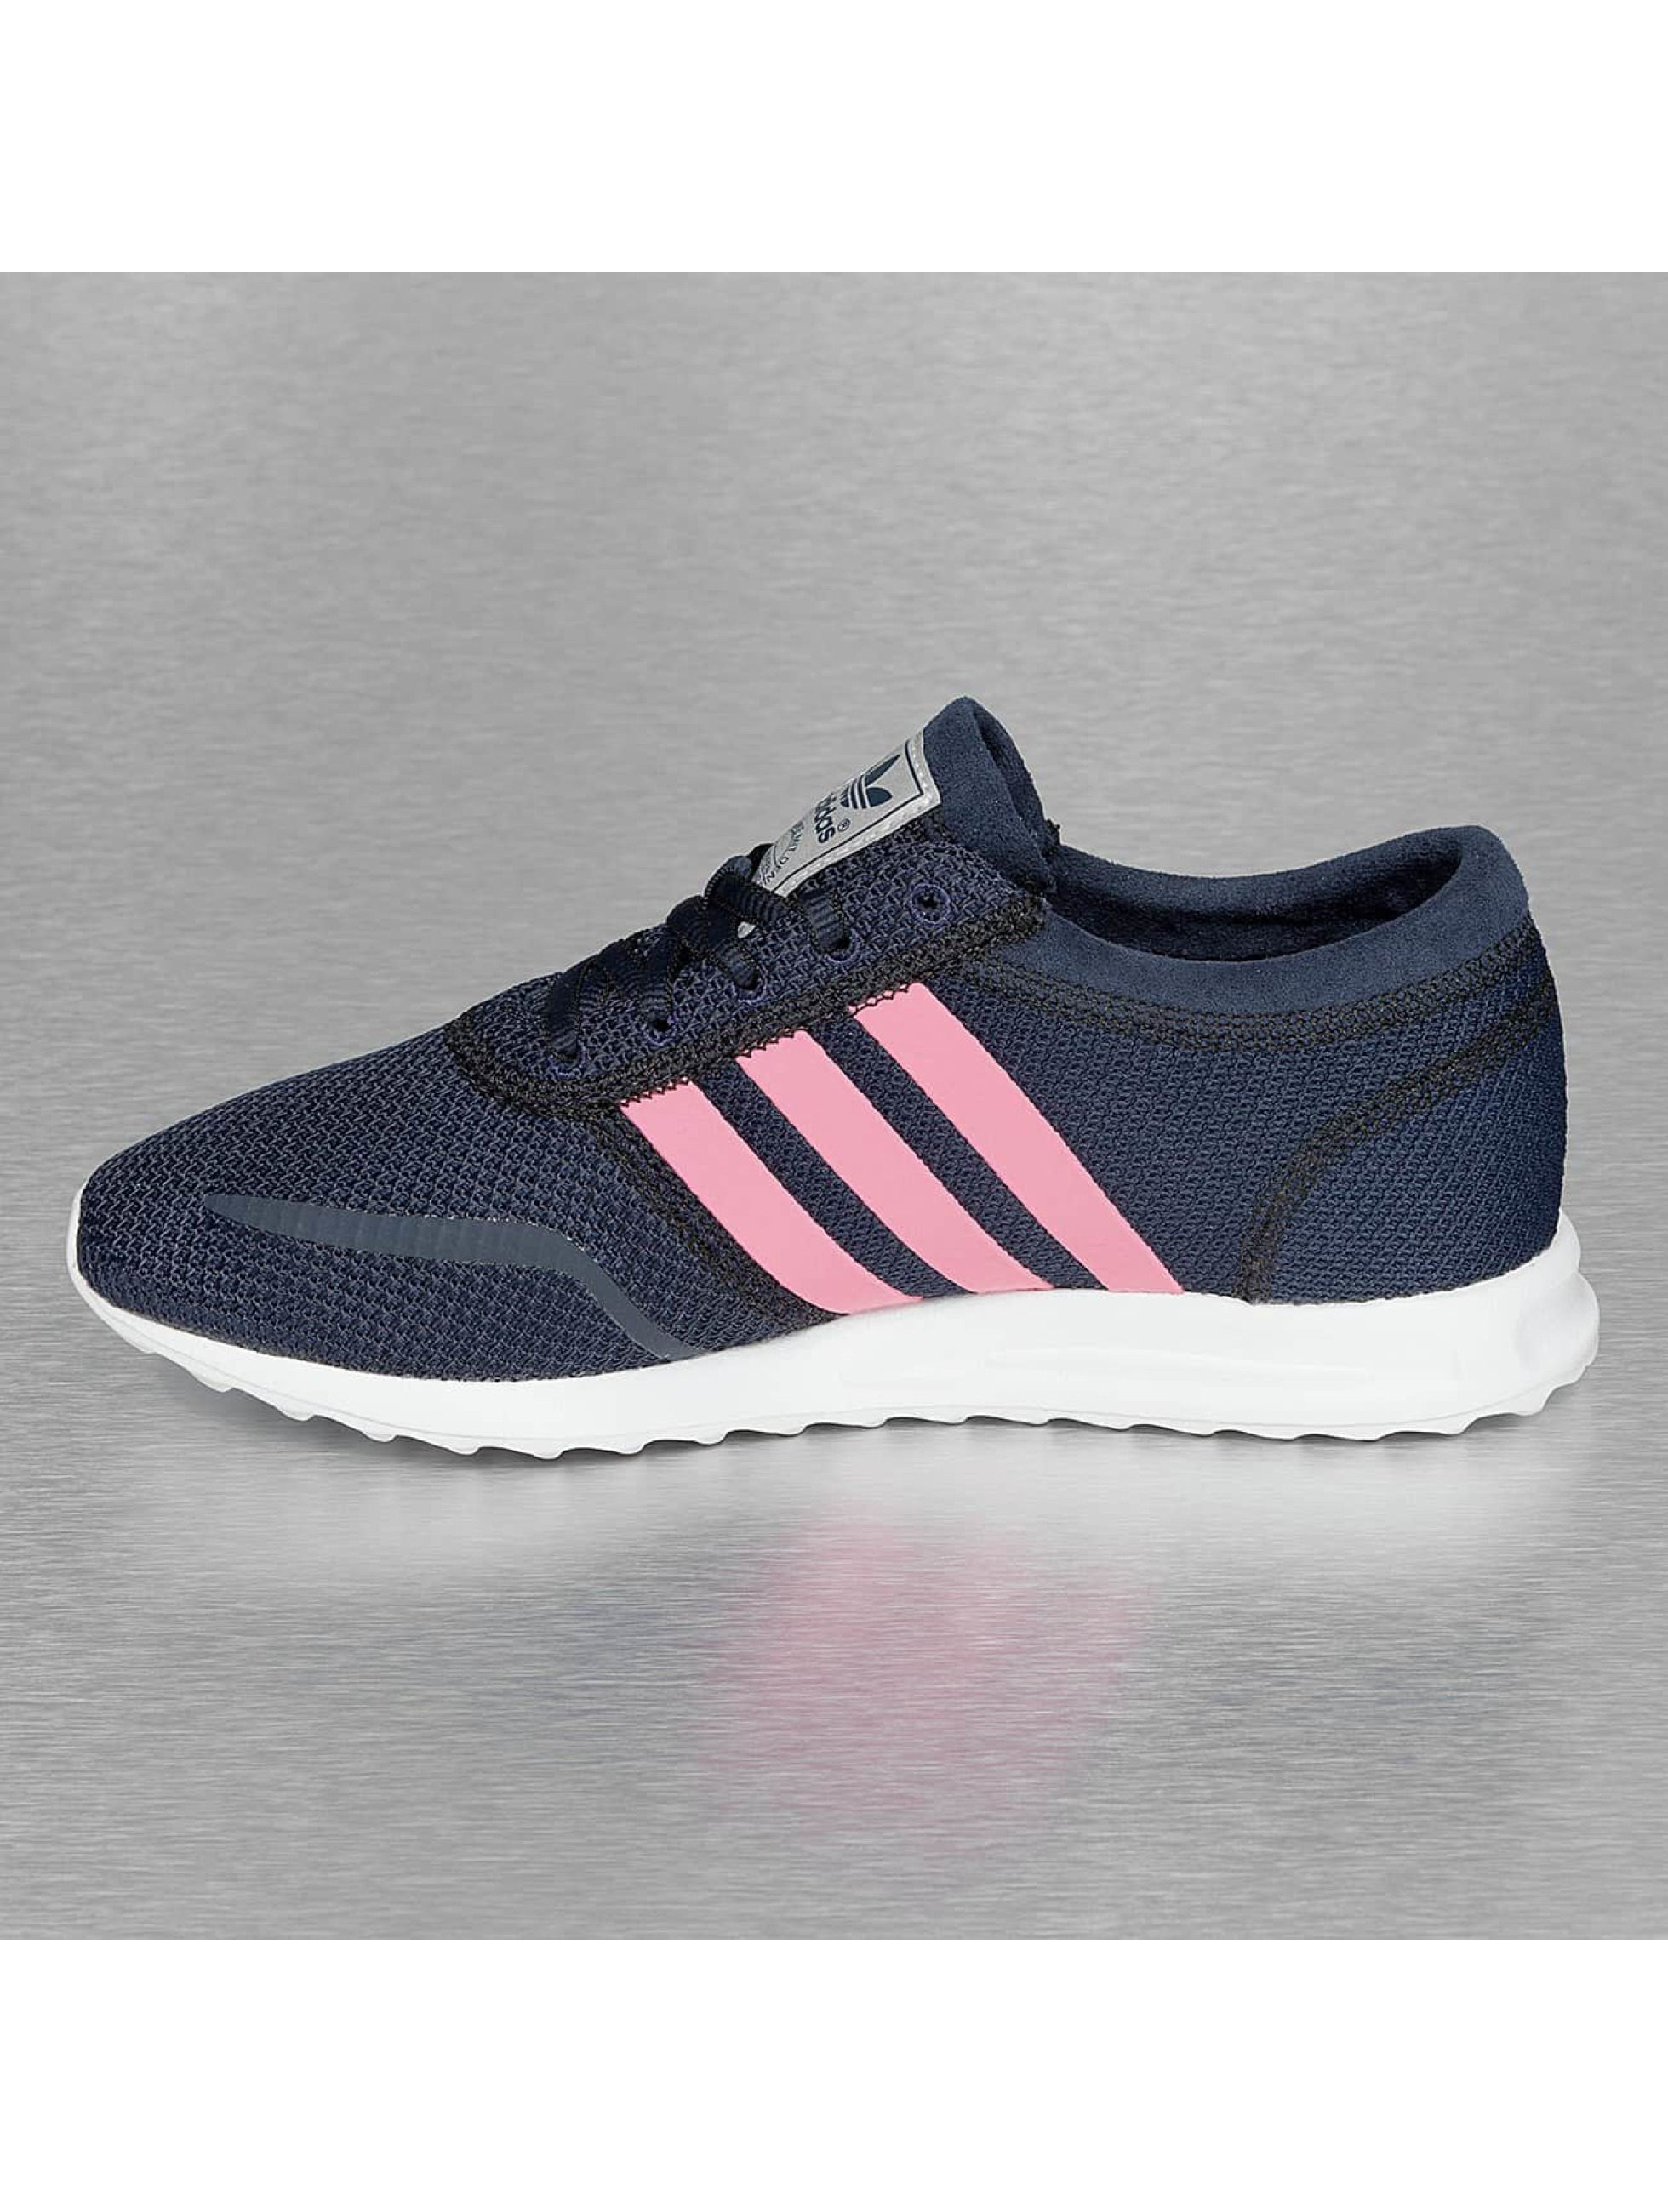 adidas sneaker damen blau rosa. Black Bedroom Furniture Sets. Home Design Ideas